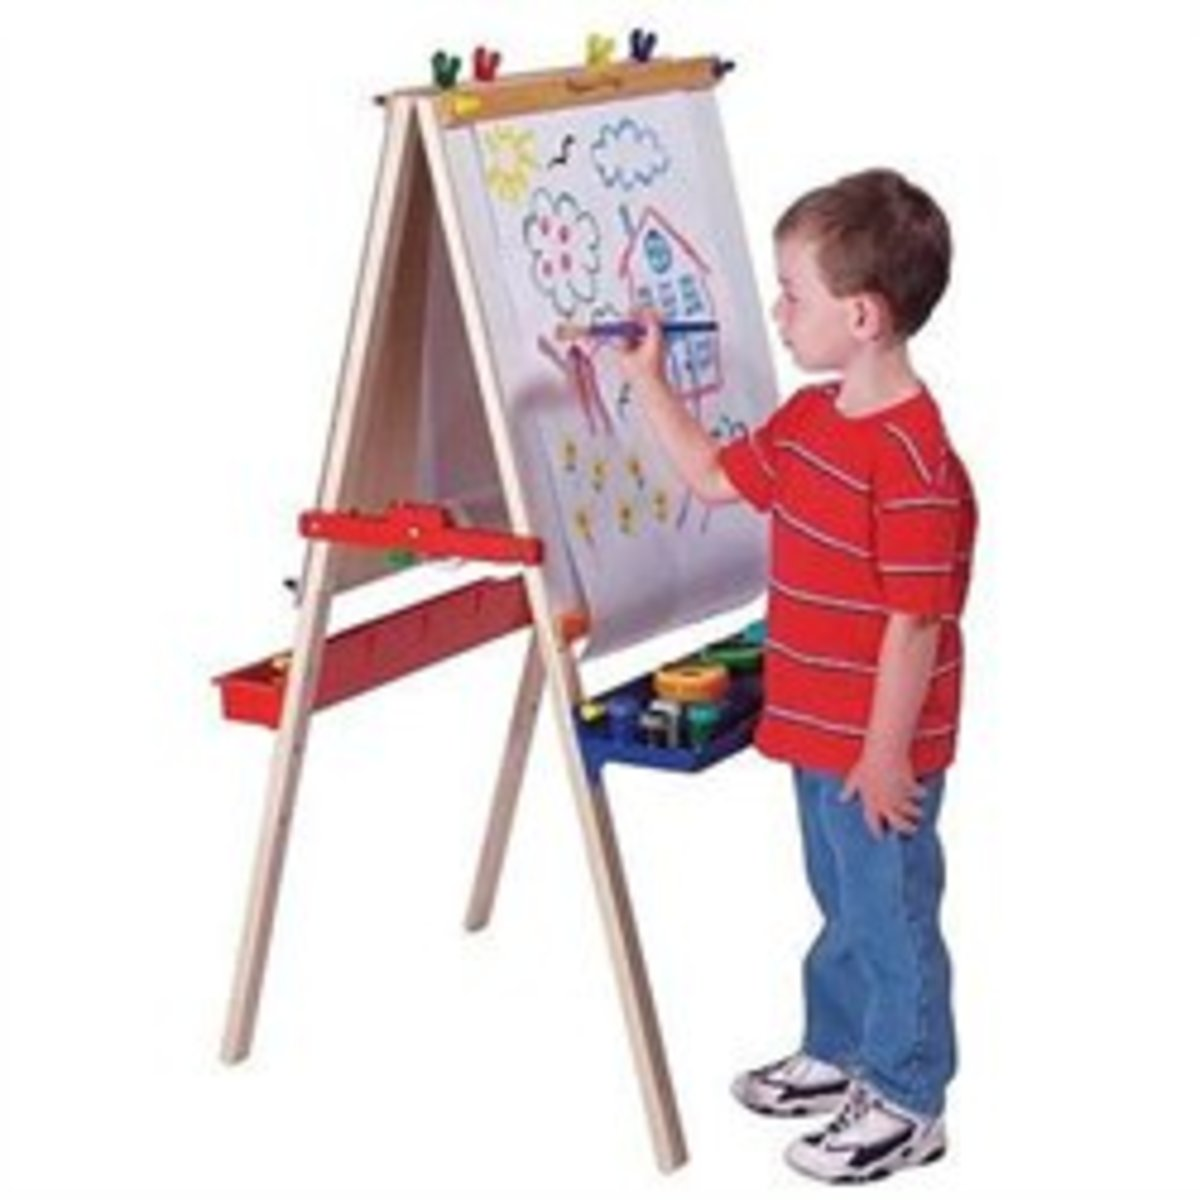 Find out more about this wonderful Melissa & Doug Deluxe Standing Easel at HeirloomWoodenToys.com